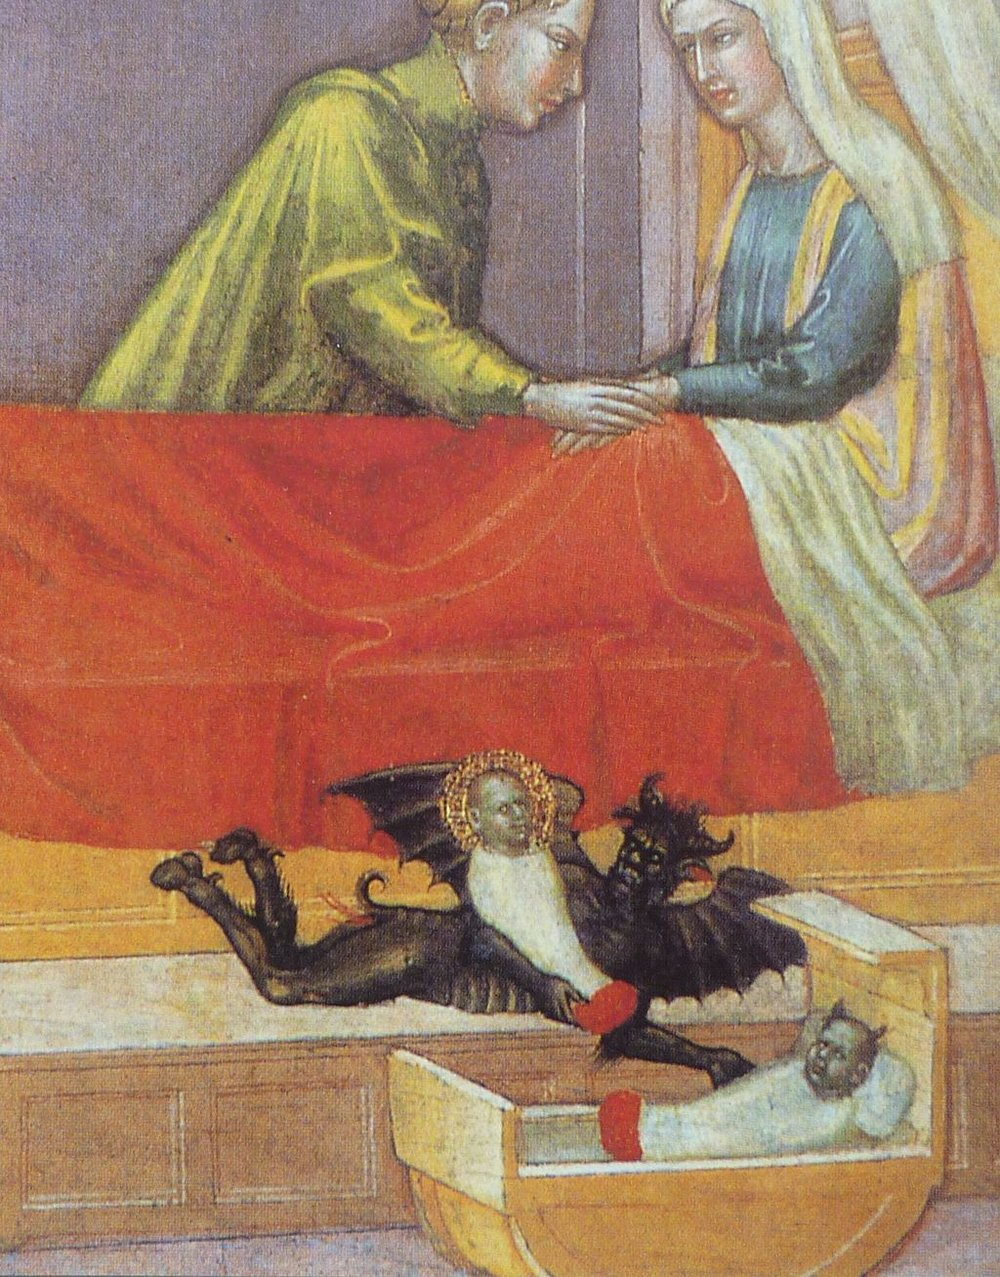 The devil swapping a baby. Artist: Martino di Bartolomeo, 15th century.